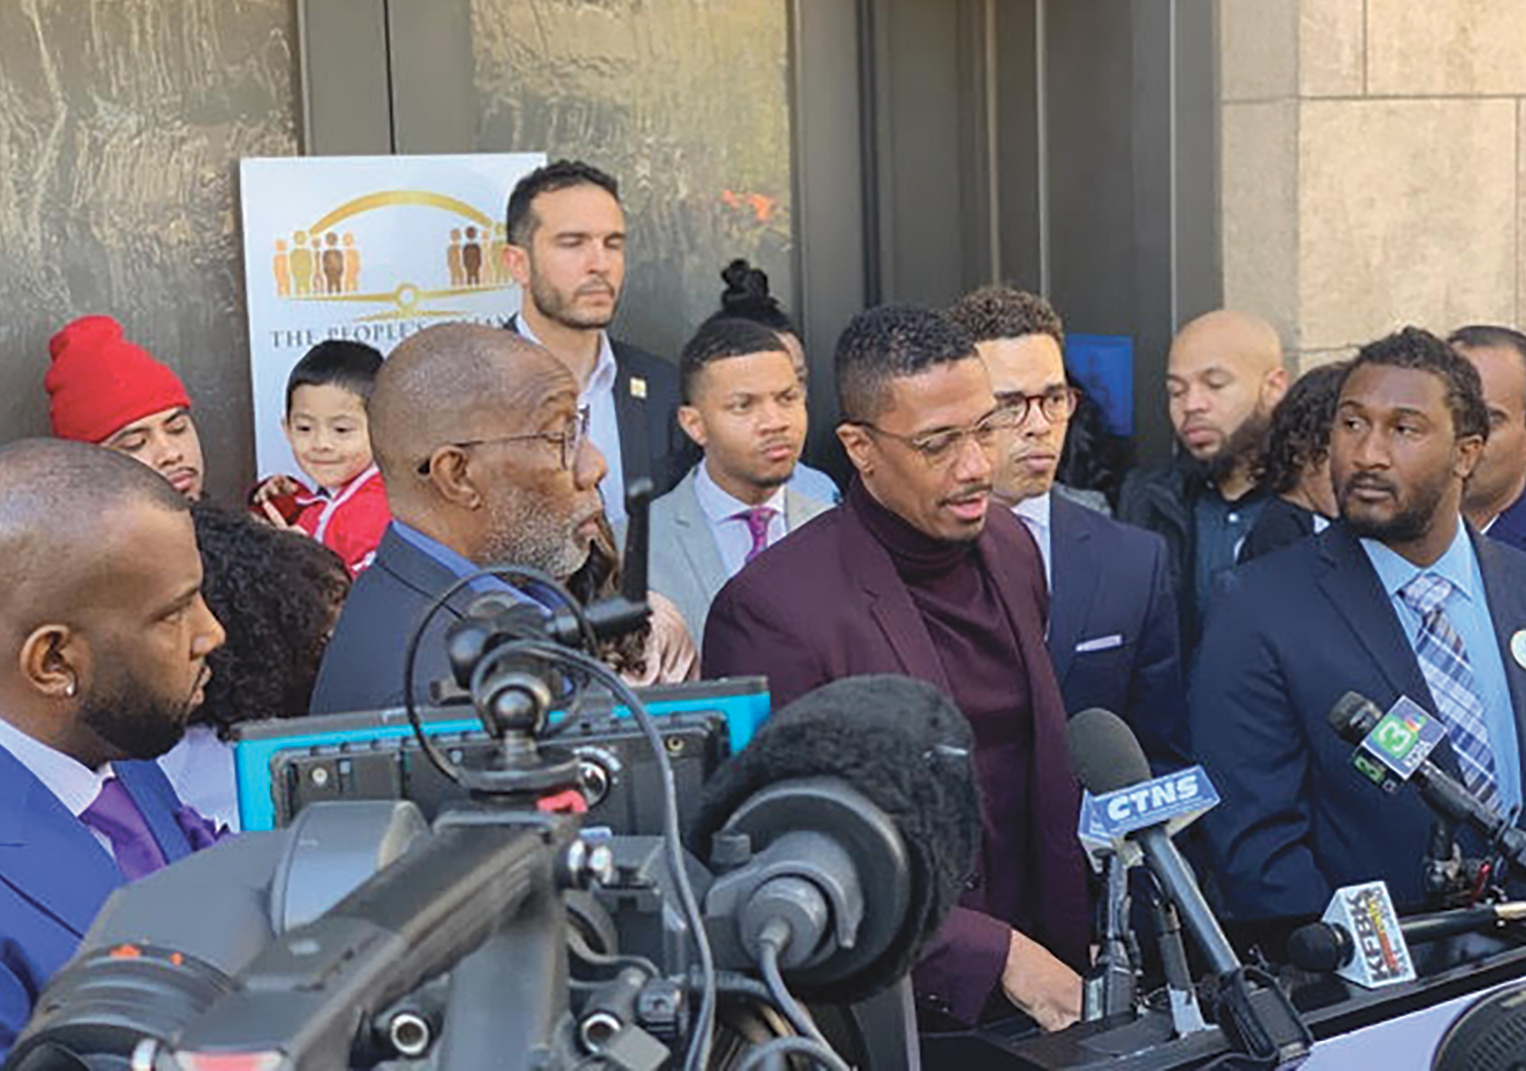 Nick Cannon standing with The People's Alliance For Justice Founder Rev. Shane Harris and supporters for AB 329, a bill aimed to reduce police use of force. (CBM courtesy photo)